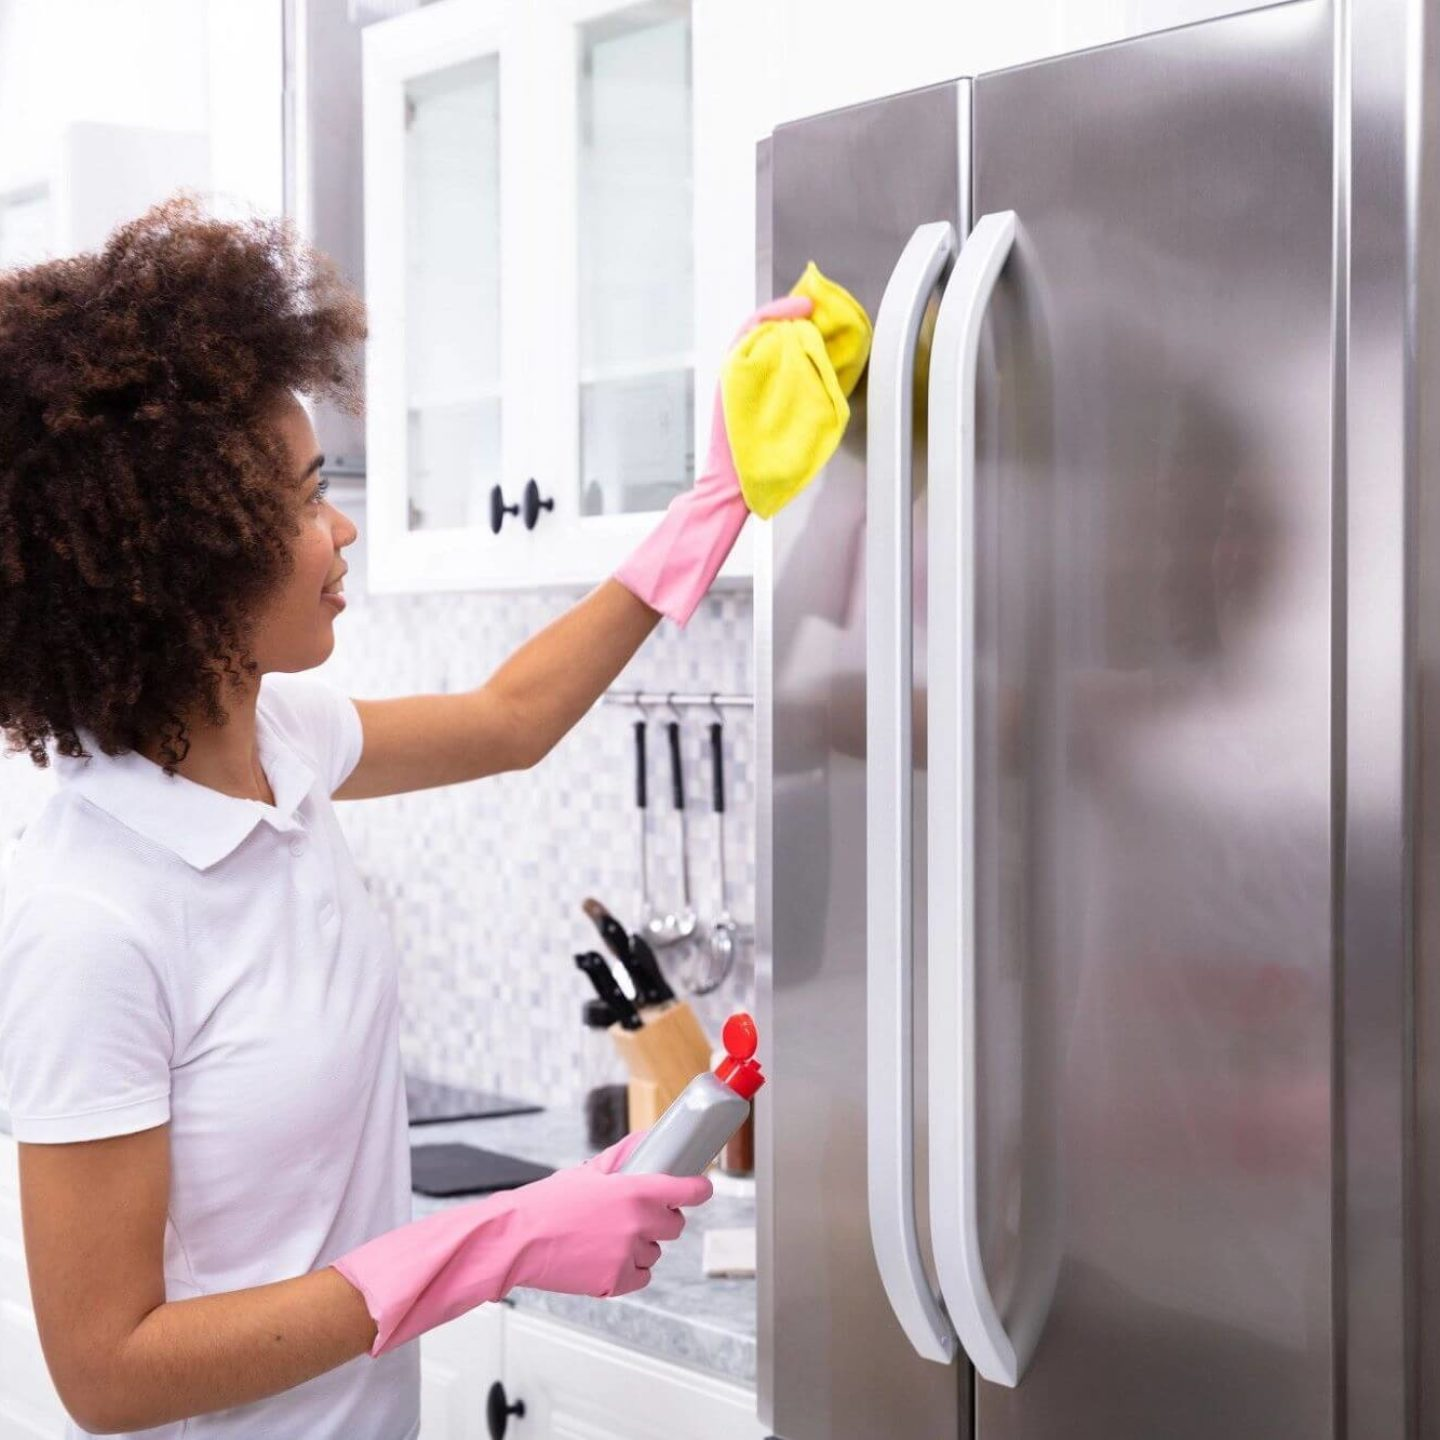 Woman cleaning refrigerator - Spring Cleaning to Feel Better and Create a Healthier Home   NSF International